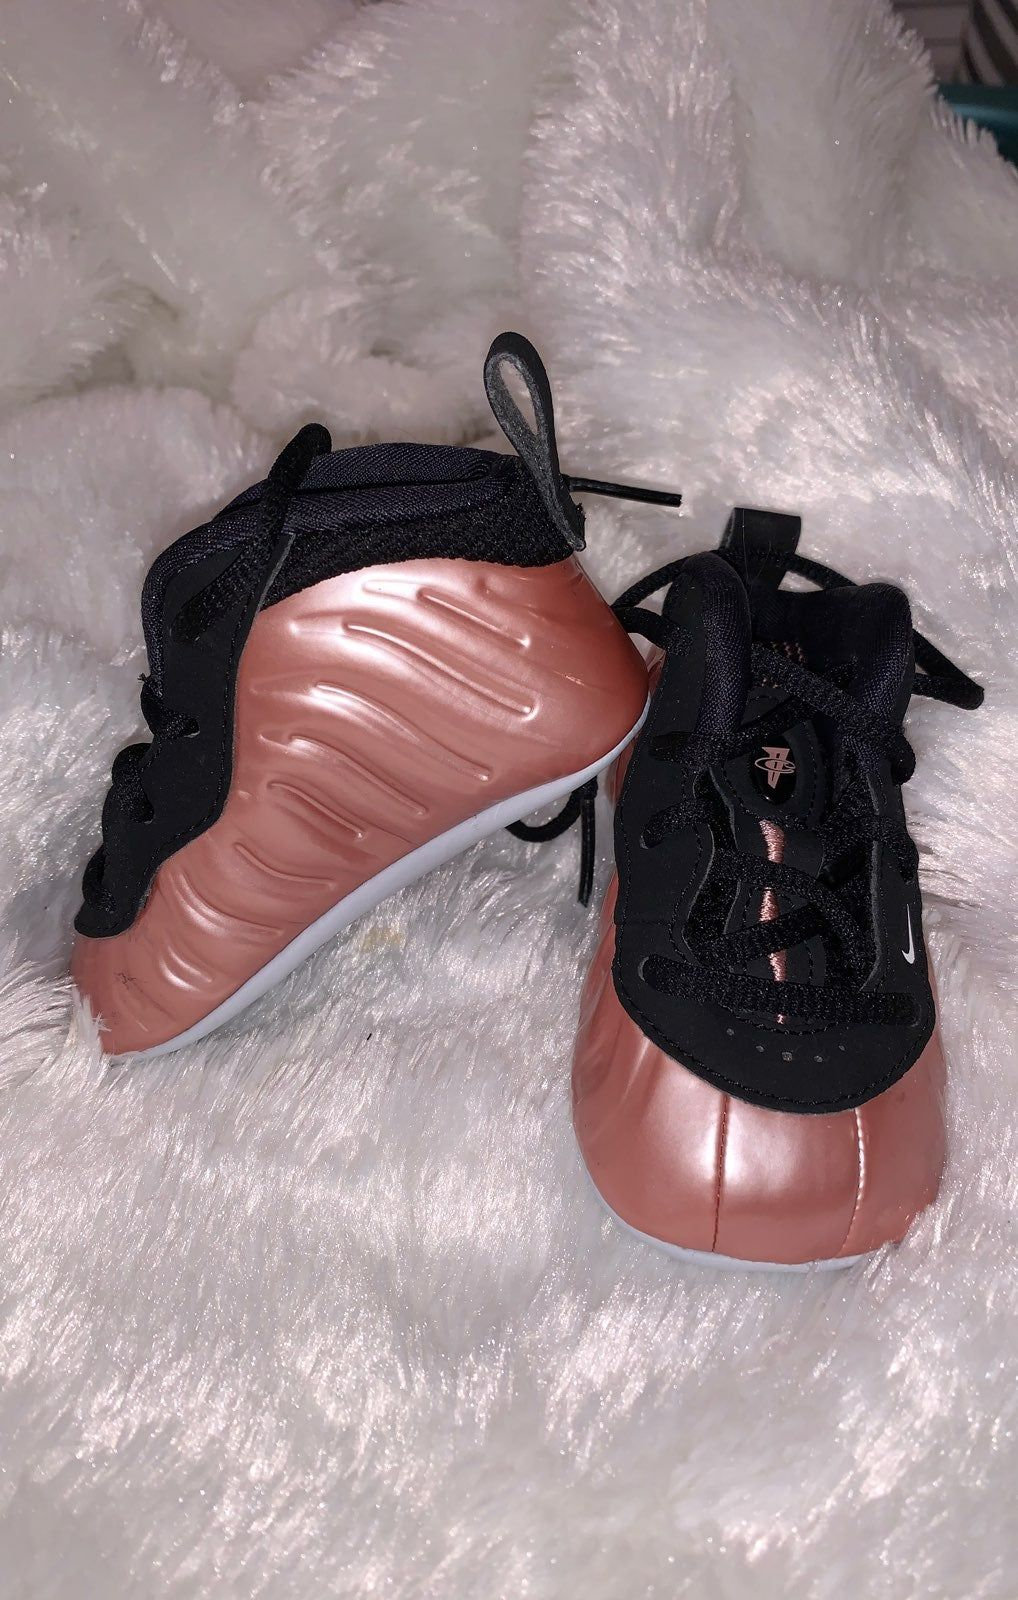 pink nike foamposites more-so of a rose gold color size: 3c worn once times